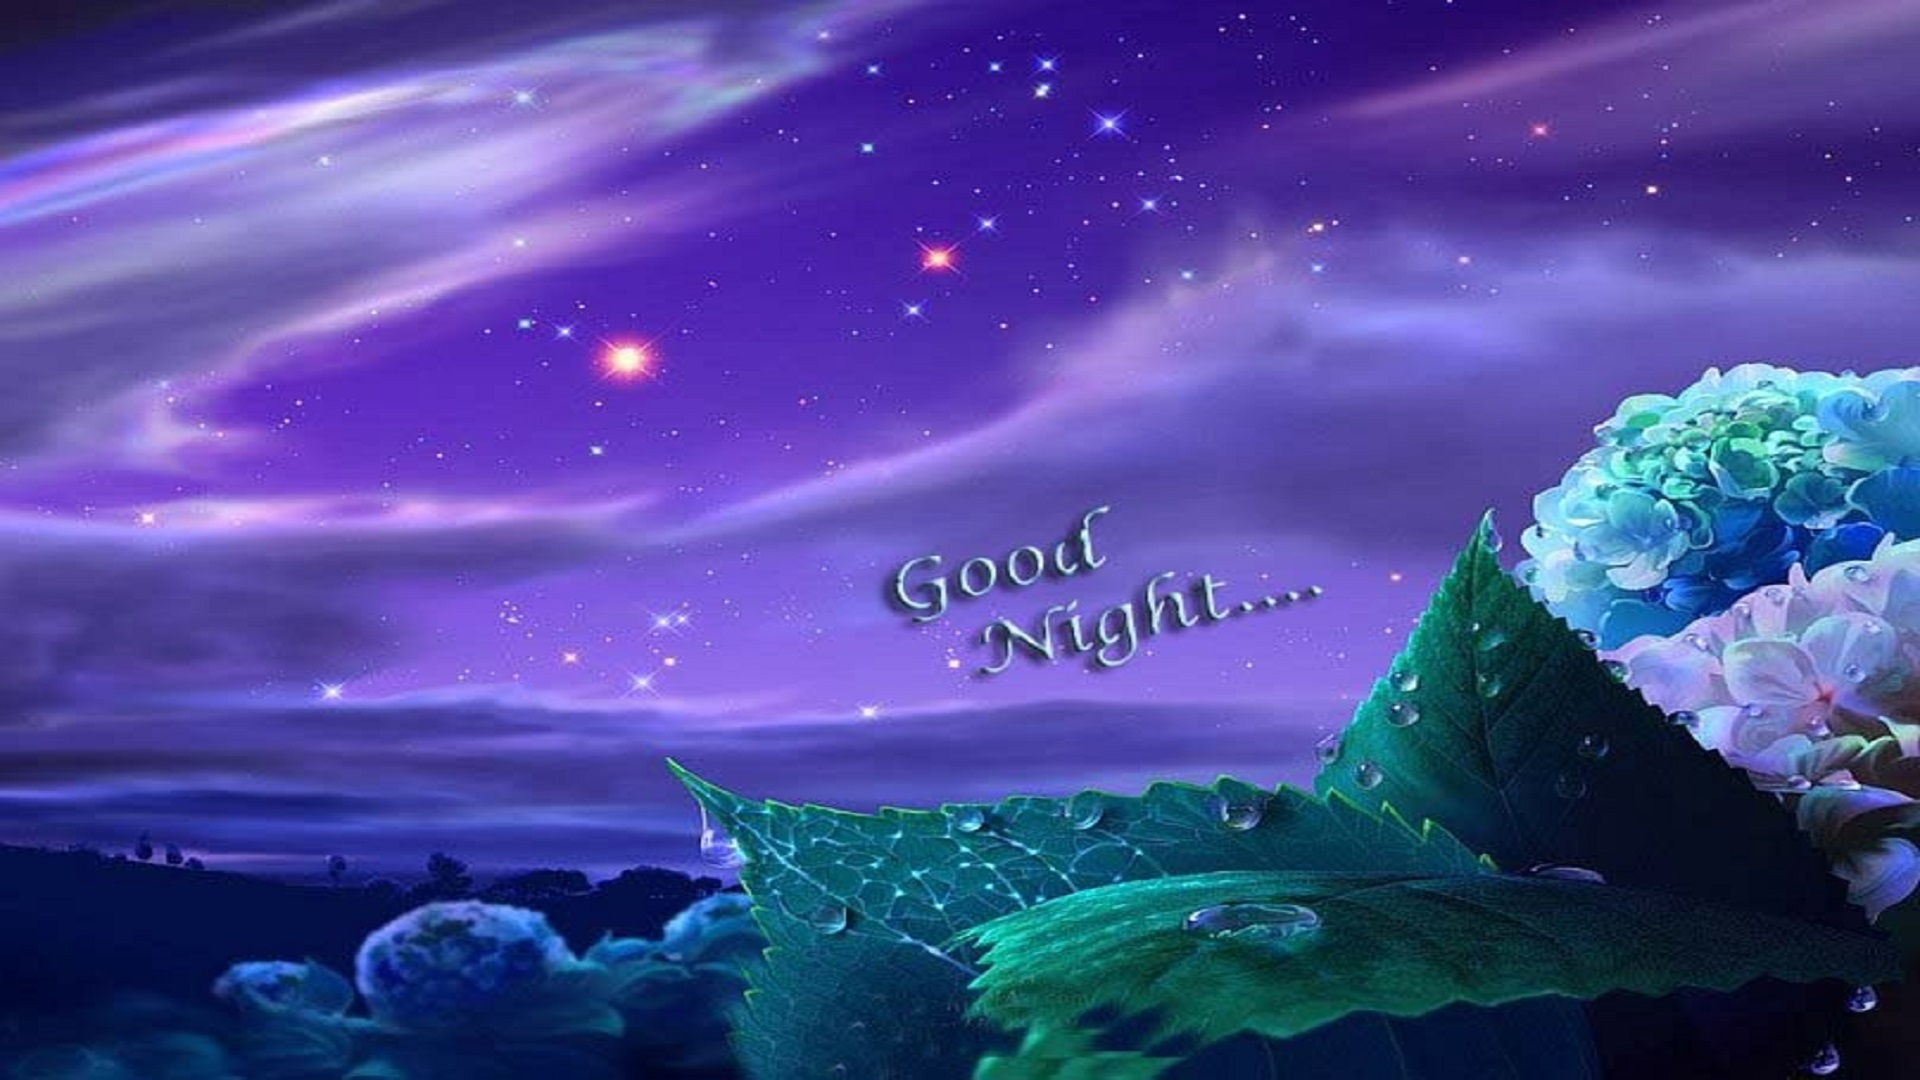 Good Night Purple Sky Wallpapers Free For Desktop Hd Hd Wallpaper